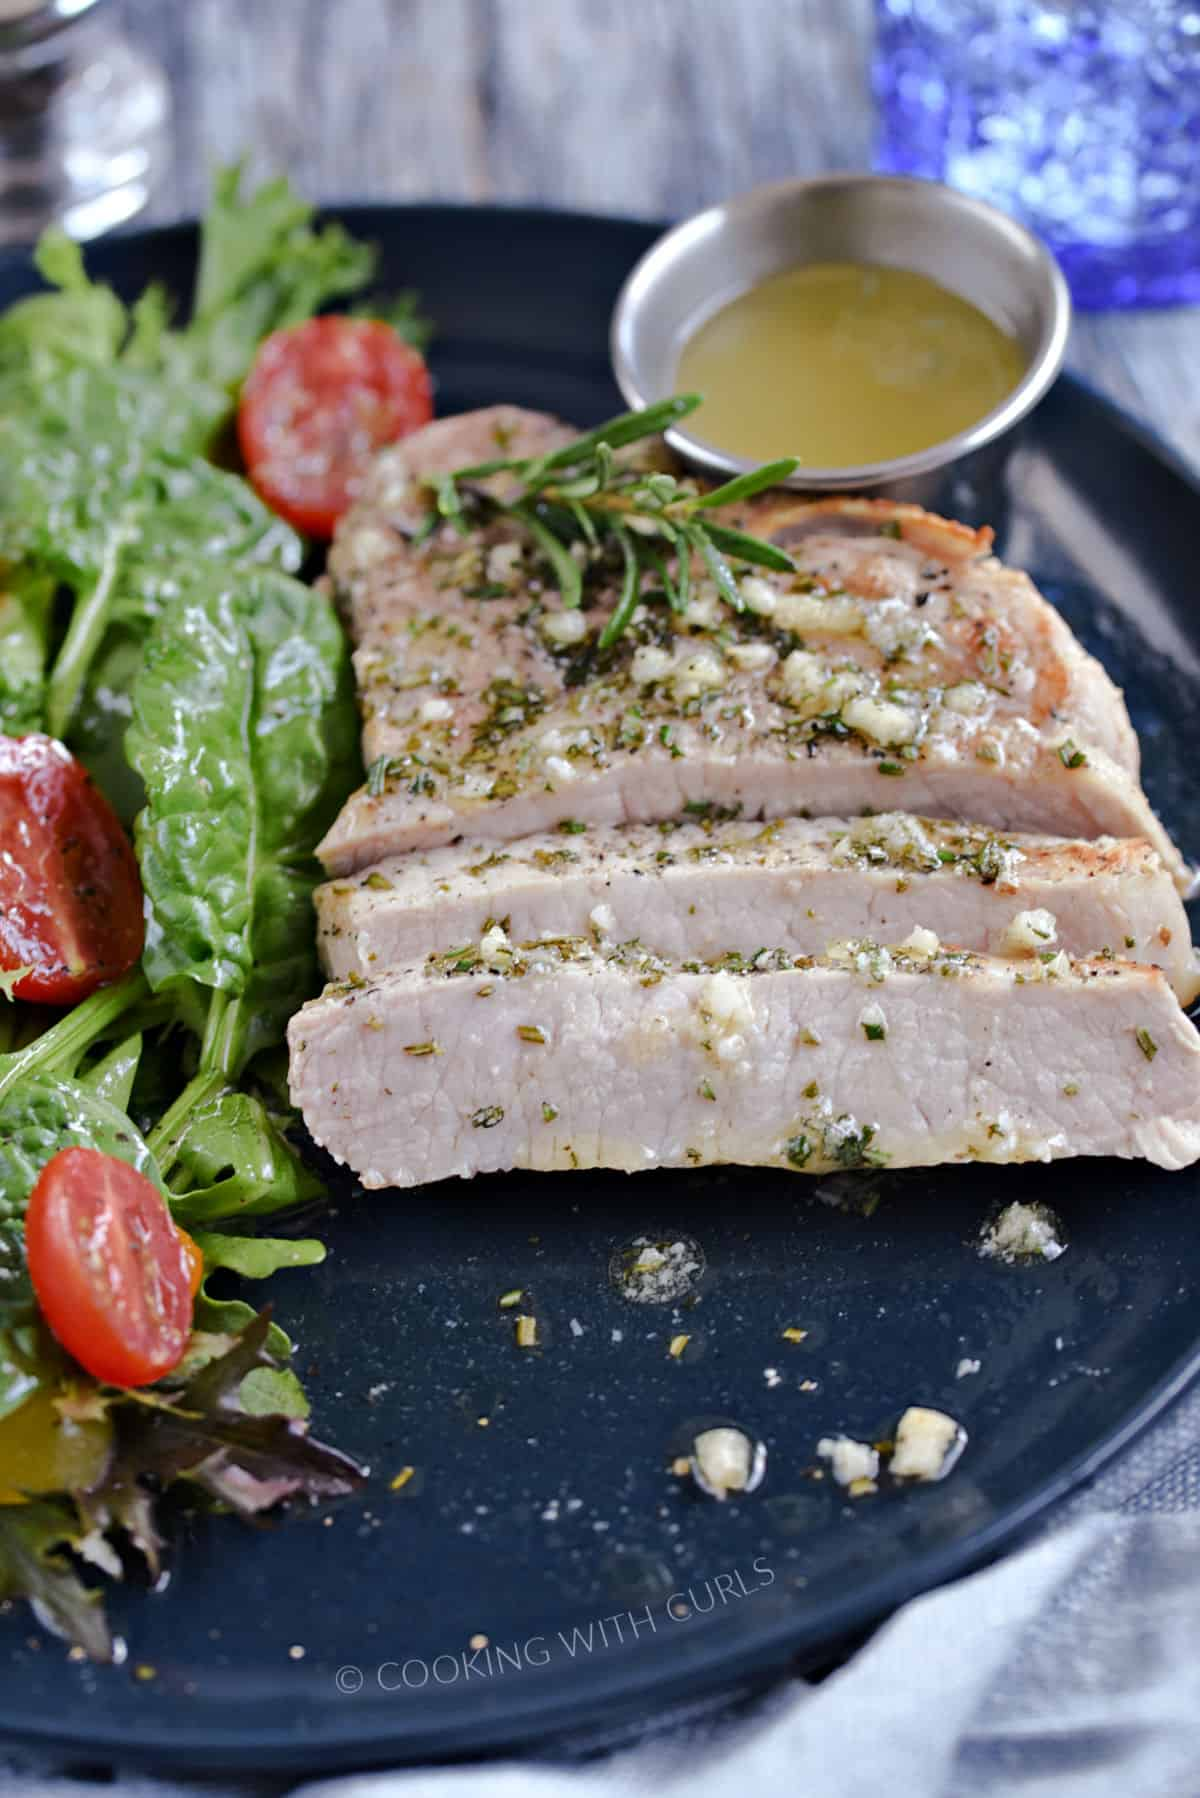 A sliced pork chop topped with melted garlic rosemary butter with a green salad on the side.